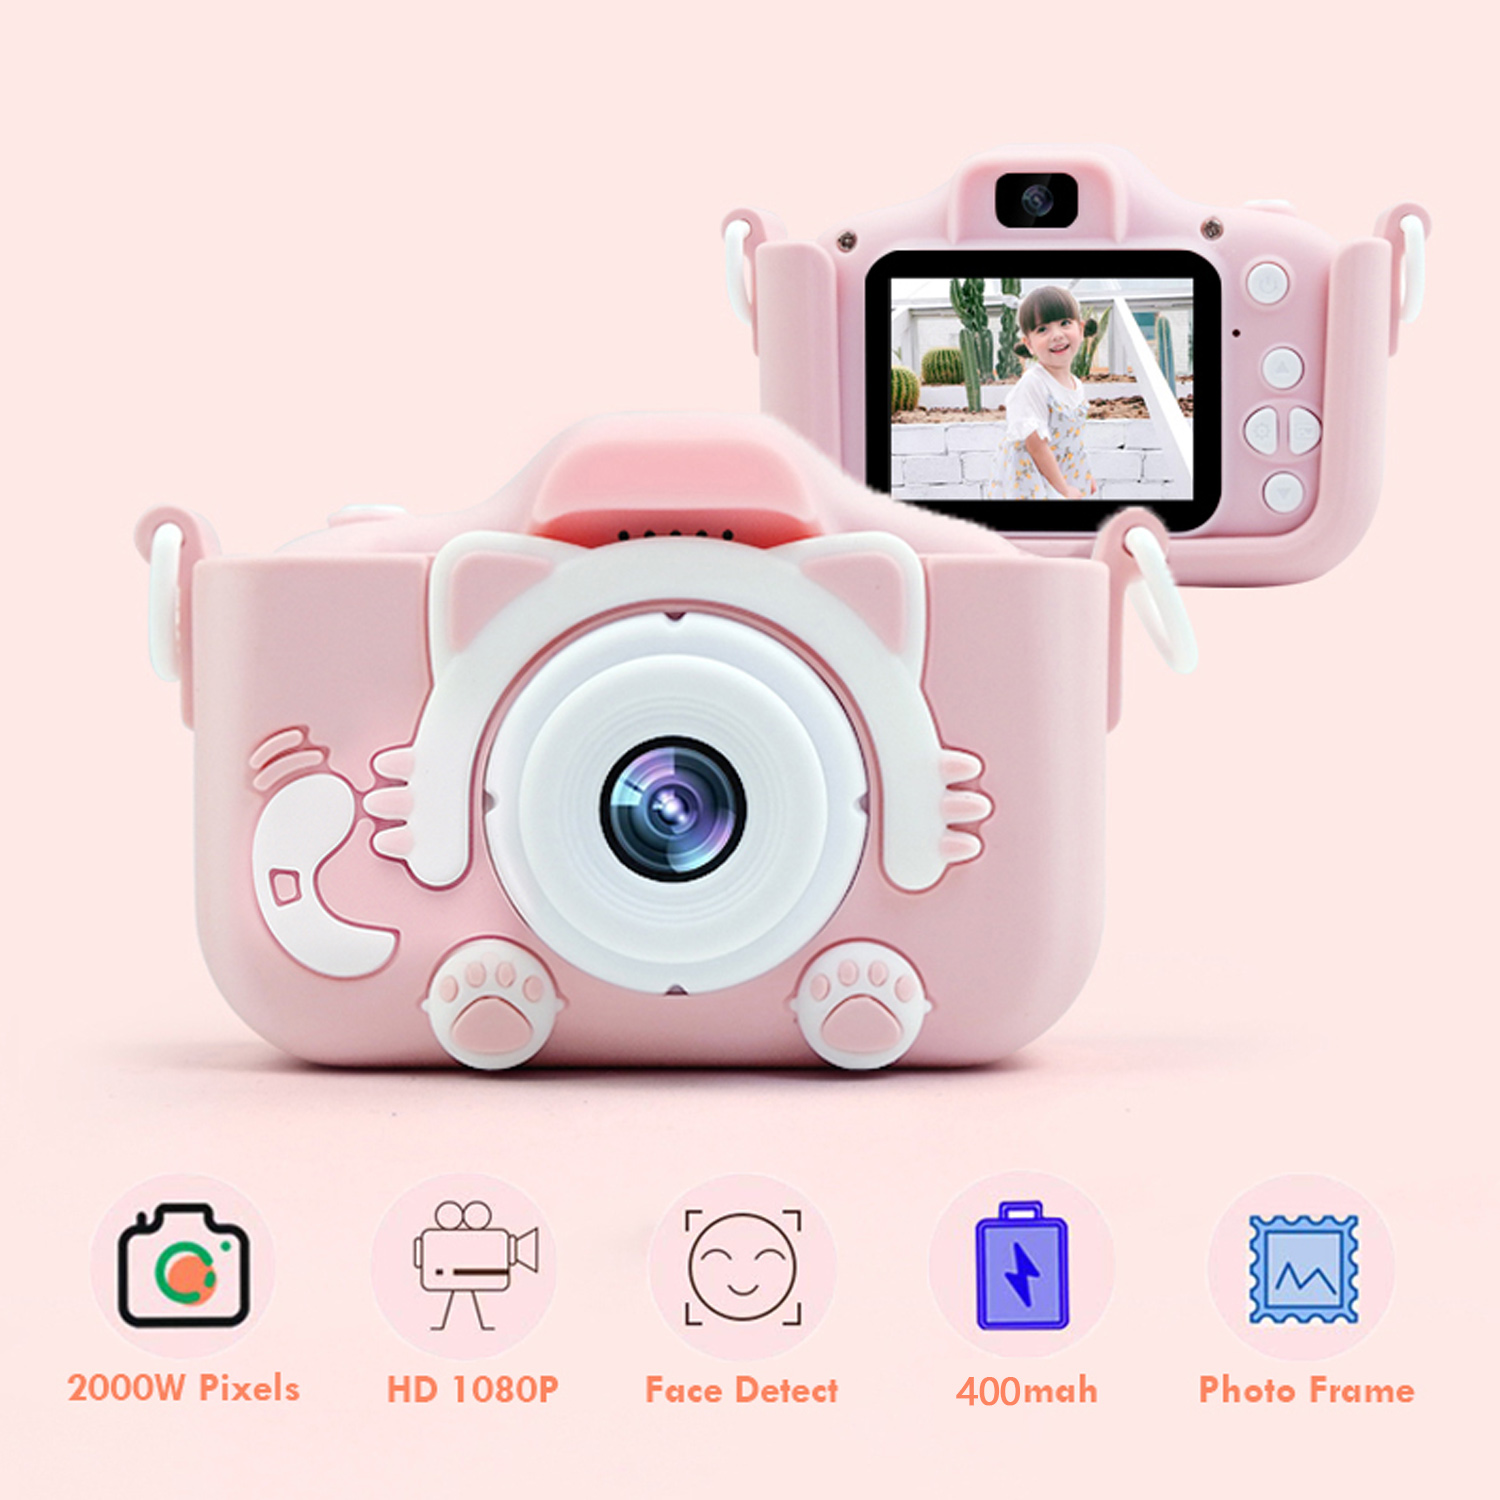 1080P 2000W Mini Cute Kids Digital Camcorder Video Camera Toys Built in Games for Children Toddler Christmas Birthday Gifts